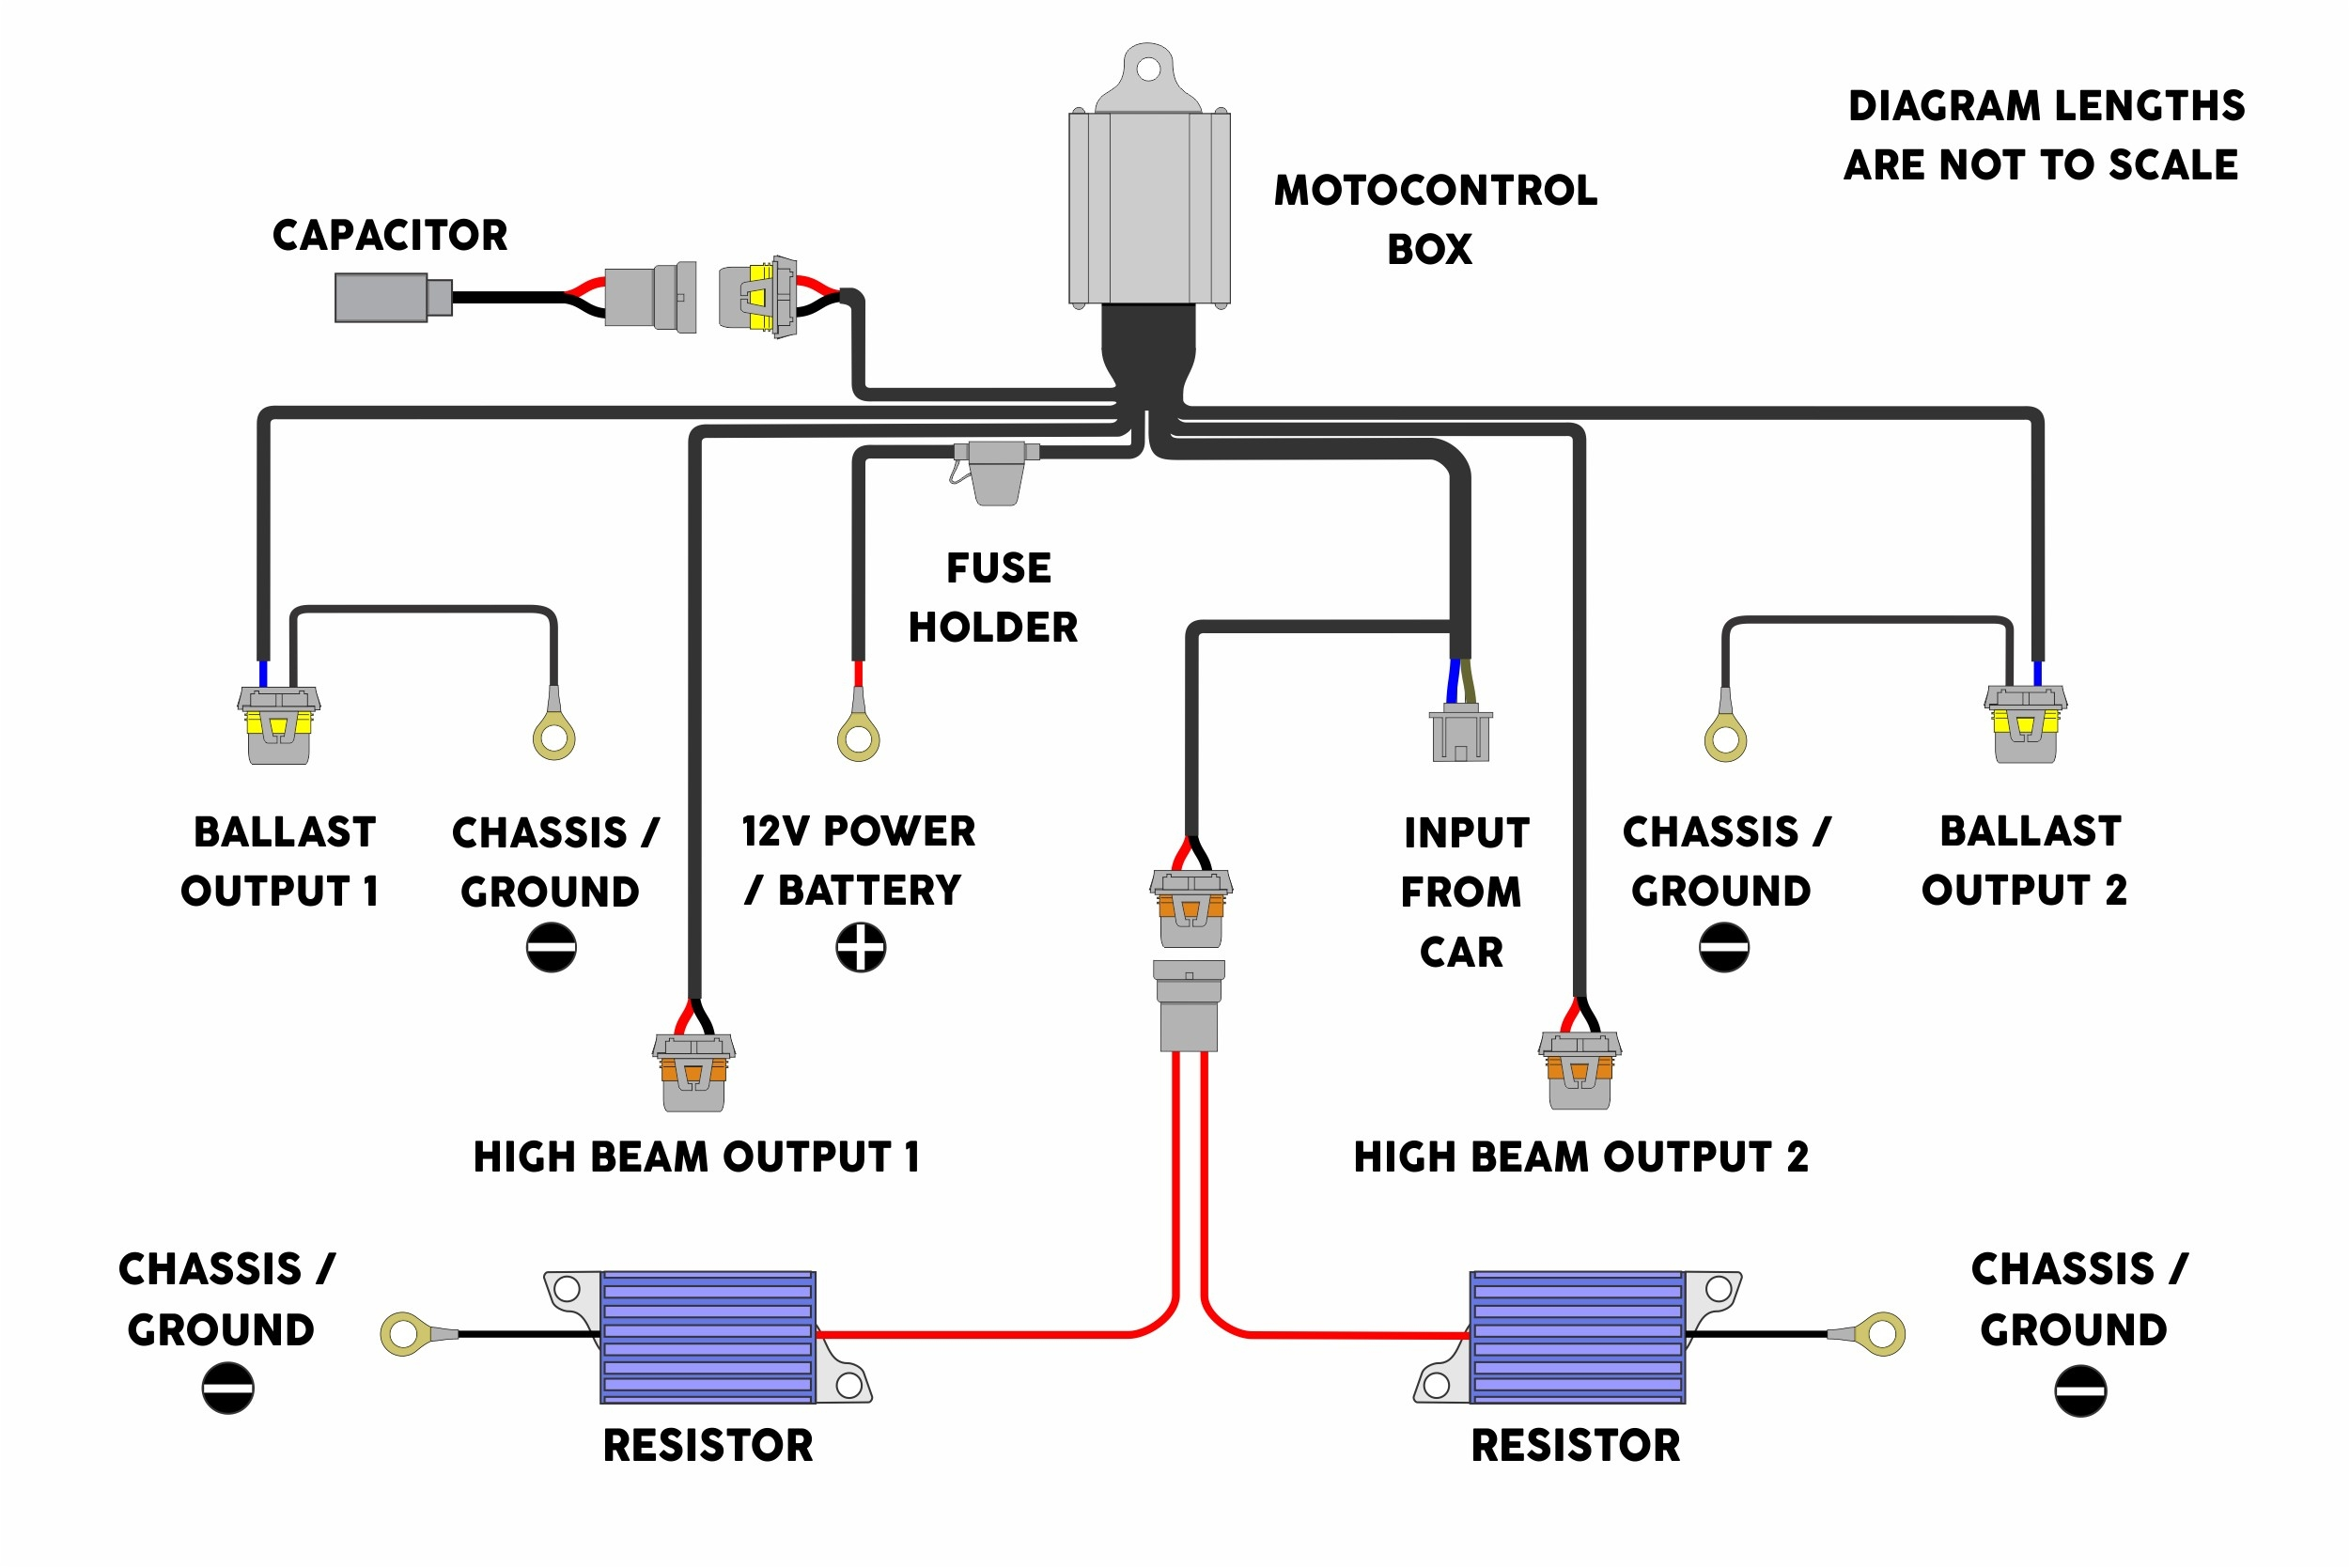 hella 5 pin relay, altronix relay, dpdt relay, control relay, on rb5 relay wiring